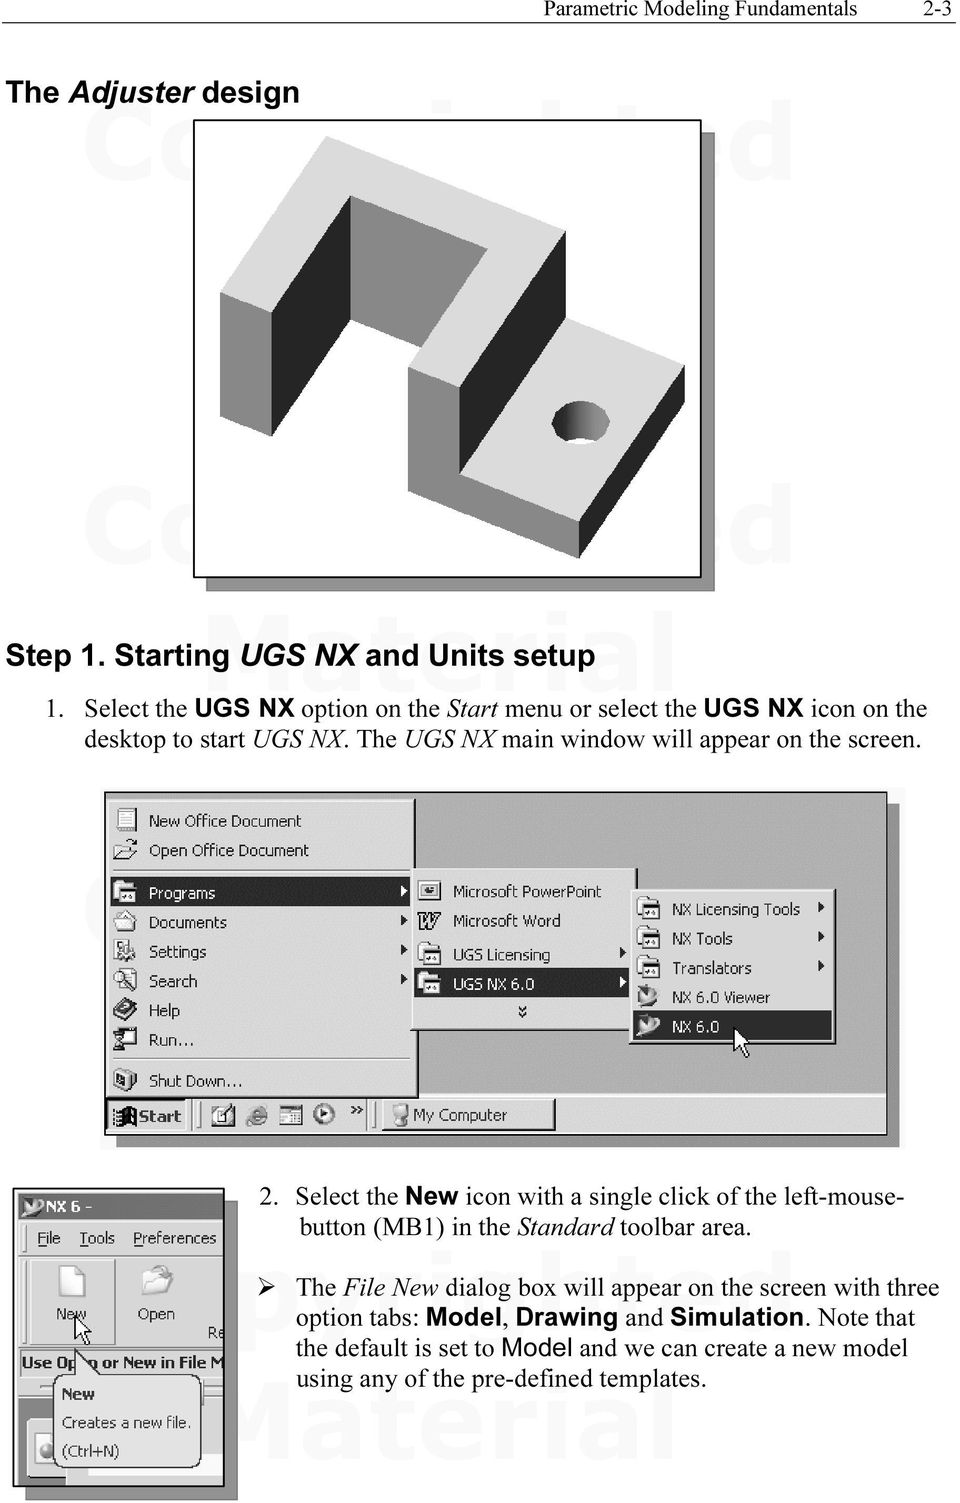 The UGS NX main window will appear on the screen. Step 1. Starting UGS NX and Units setup 2.